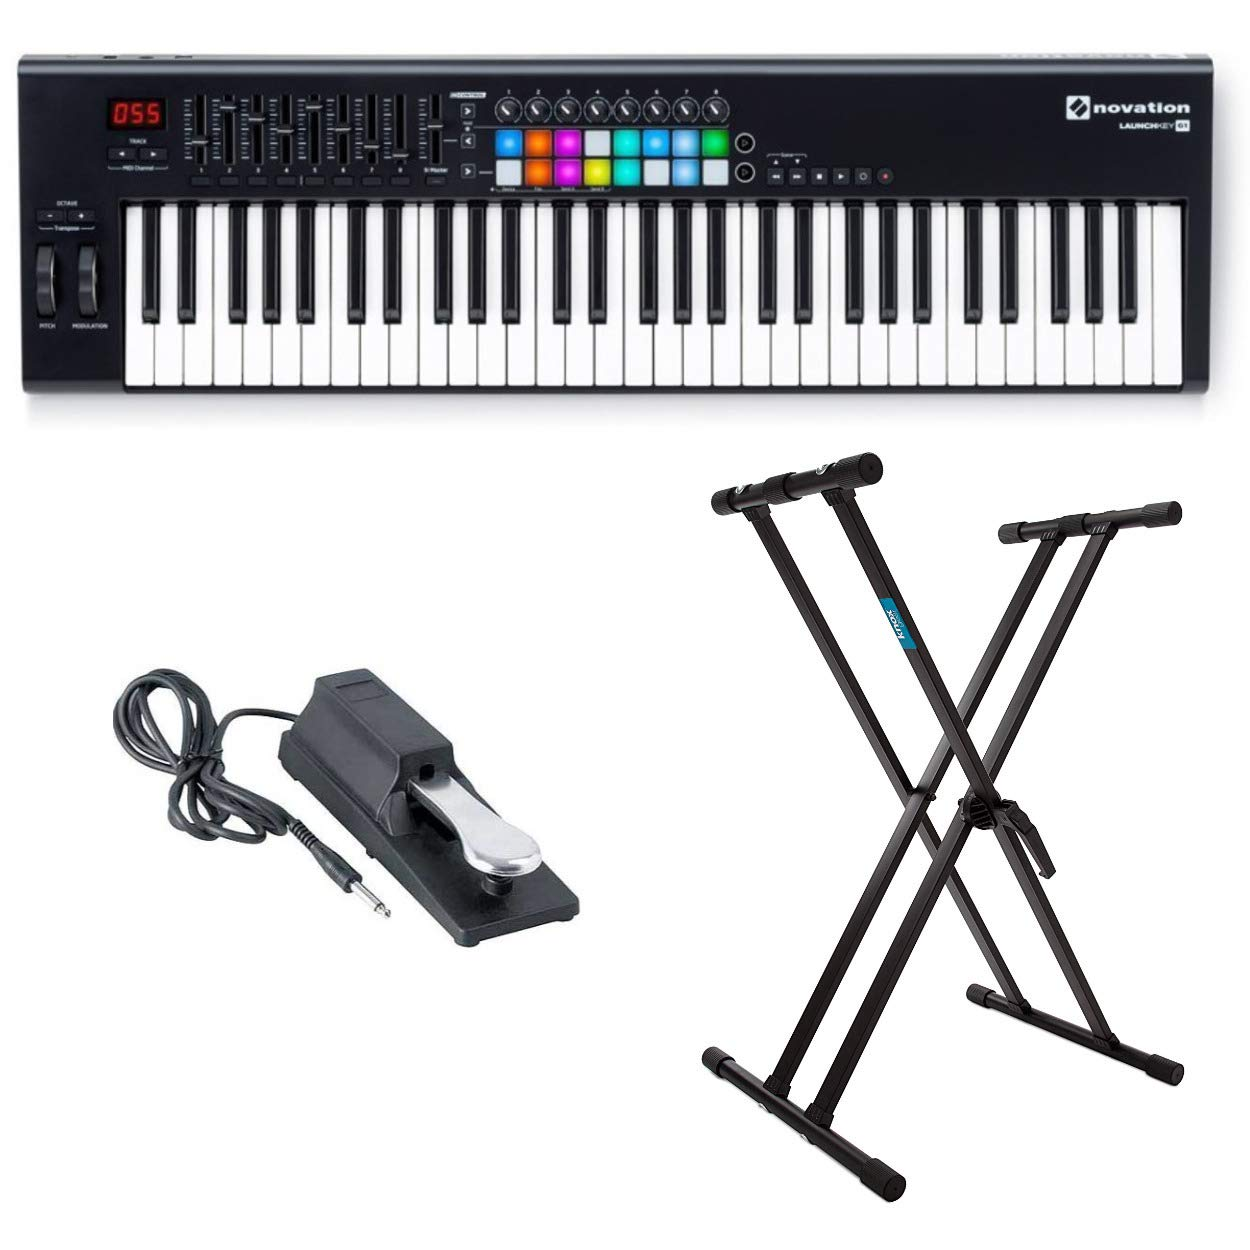 Novation Launchkey 61 MK2 Keyboard Controller with Knox Keyboard Stand and Sustain Pedal